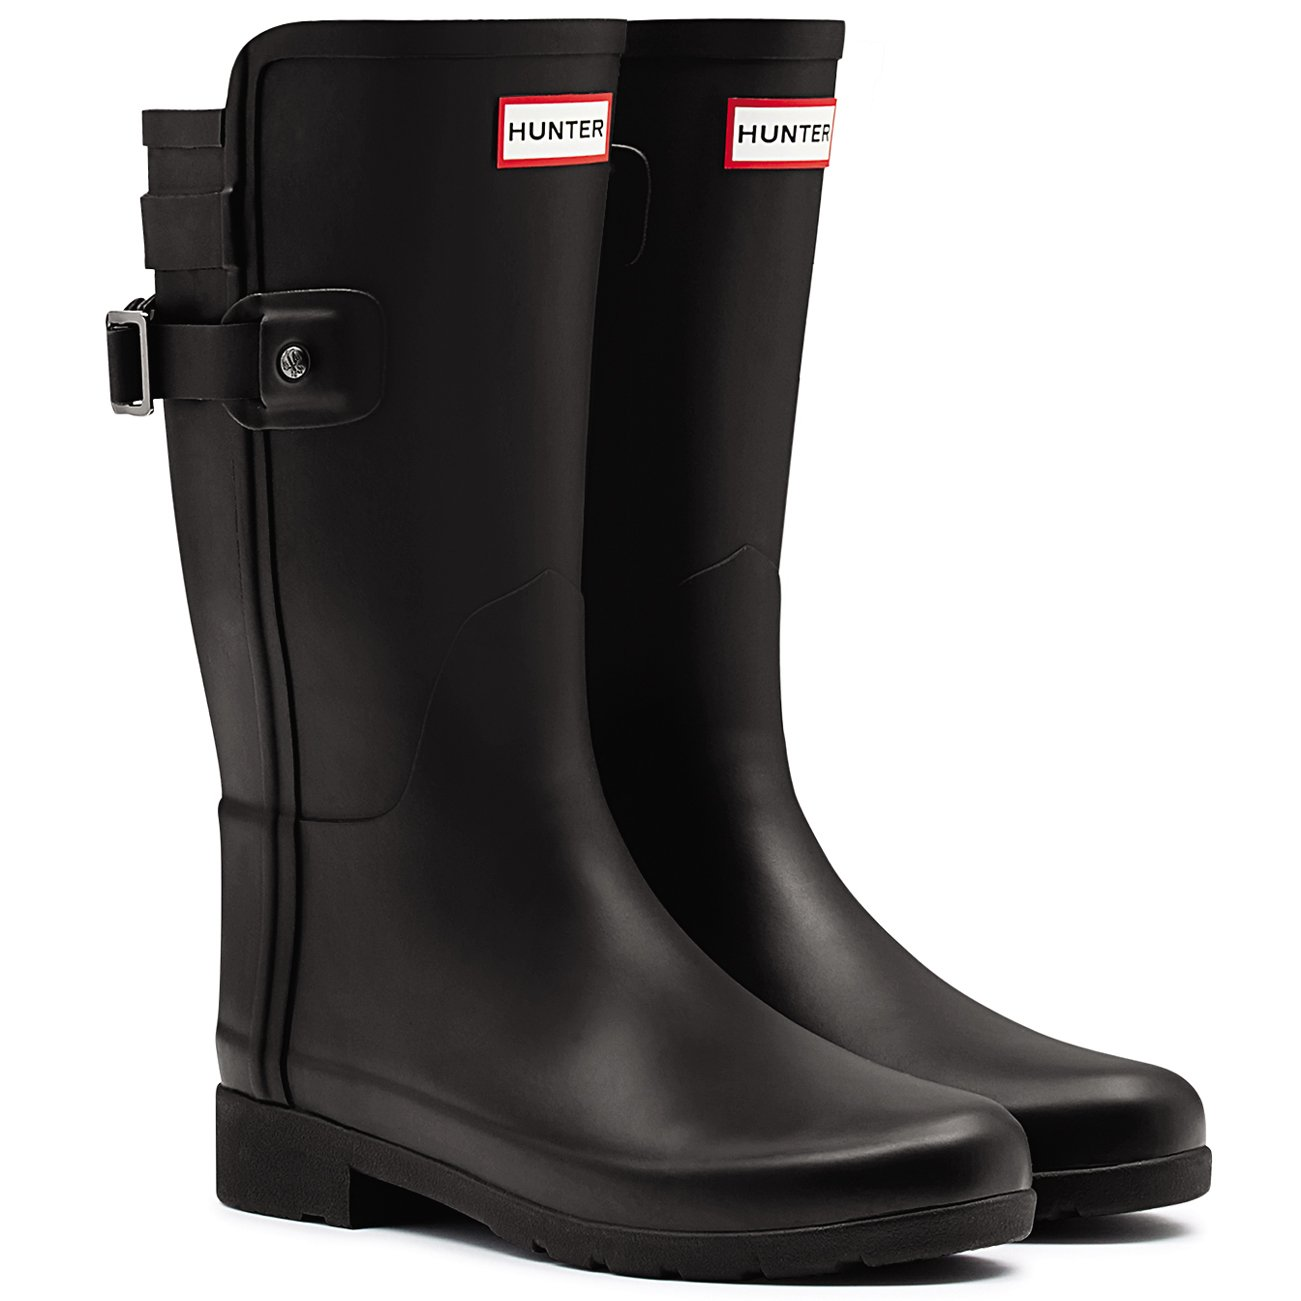 Womens Hunter Original Refined Back Strap Short 11 Wellingtons Winter Boots B015SJBNZ8 11 Short B(M) US|Black 1d47c5